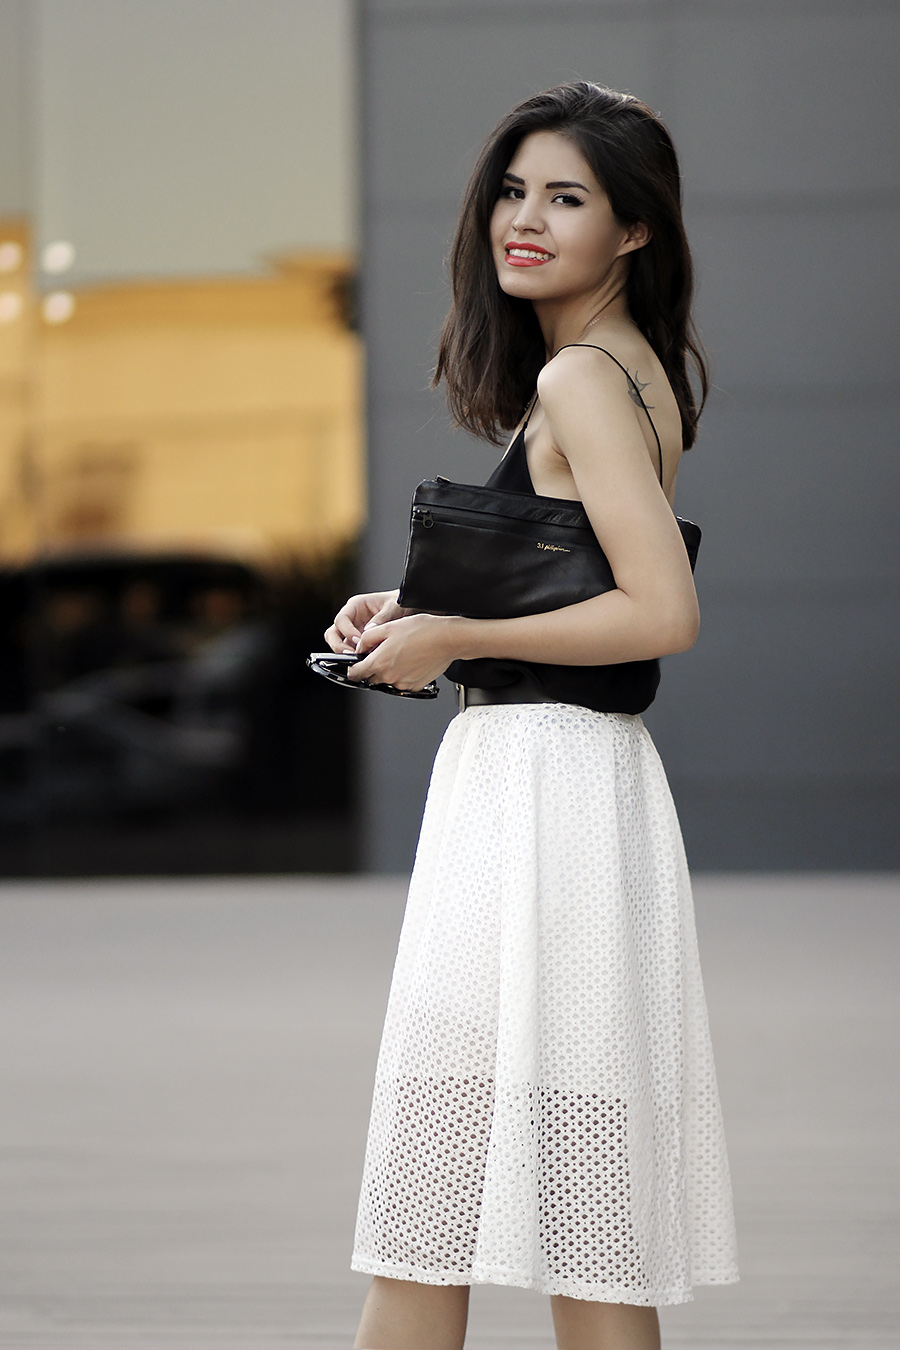 Adriana Gastélum Is Wearing A White Eyelet Midi Skirt From Sheinside, Black Top From Cami NYC And Neoprene Clutch From Philip Lim